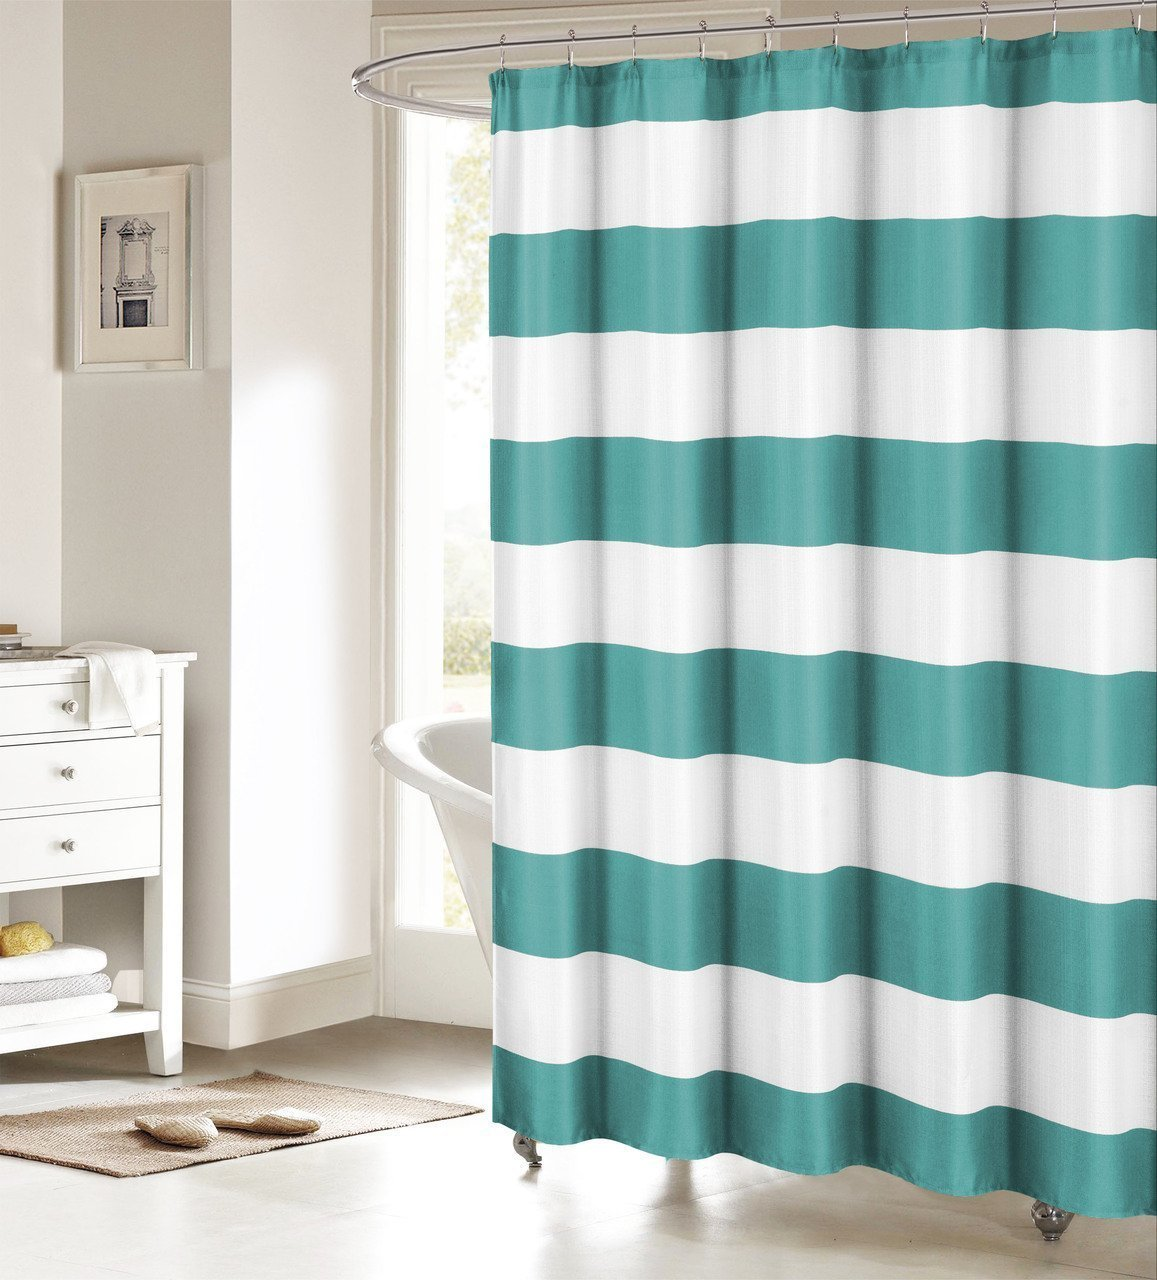 Nautical stripe shower curtain - Memory Home Fabric Shower Curtain Nautical Stripe Design Teal And White Bathroom Decor Waterproof Polyester Shower